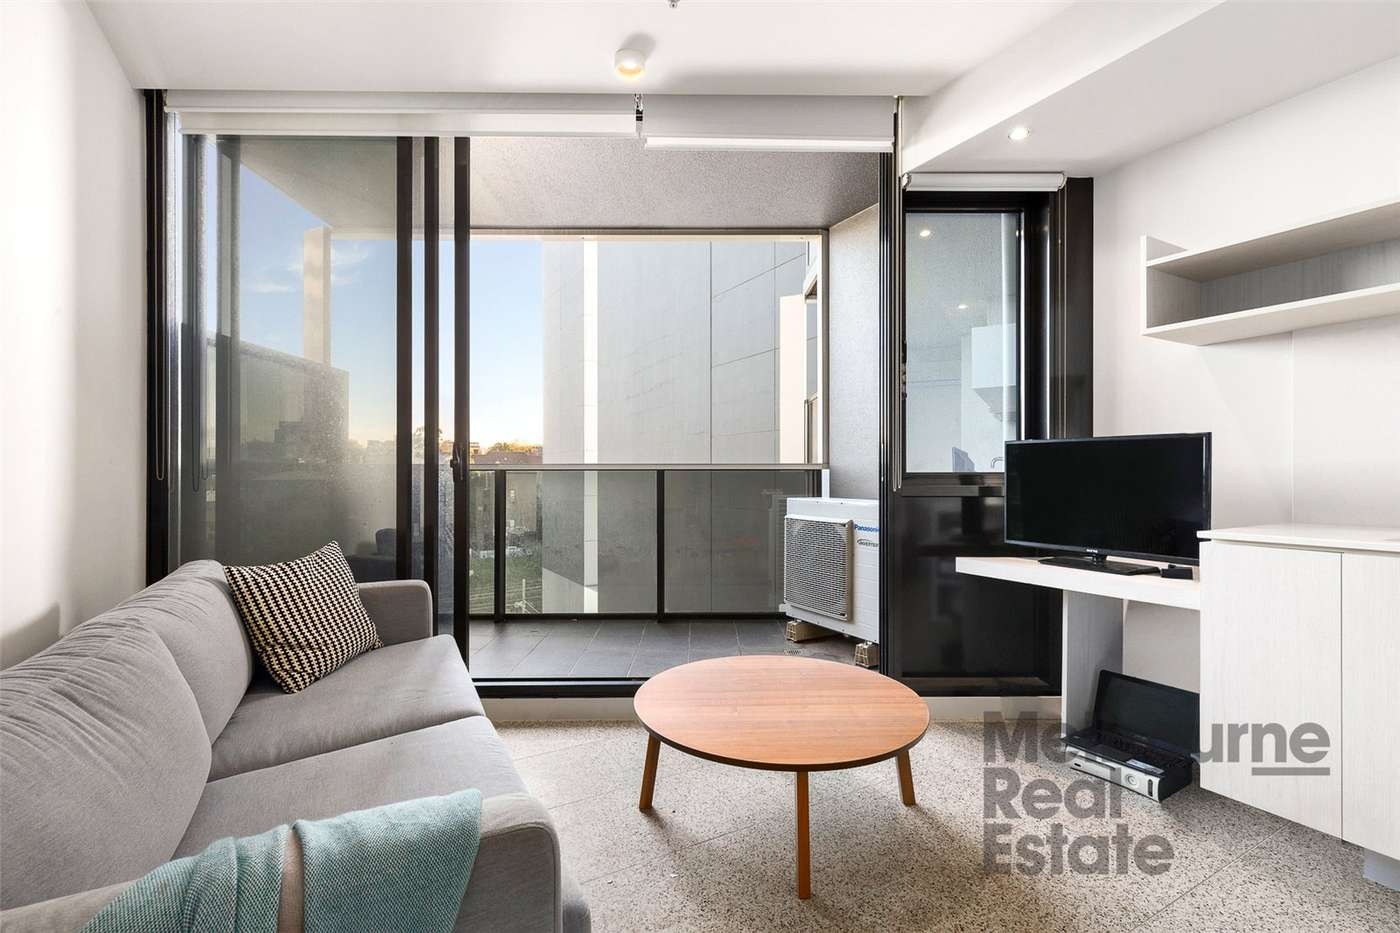 Main view of Homely apartment listing, 805/45 Claremont Street, South Yarra, VIC 3141